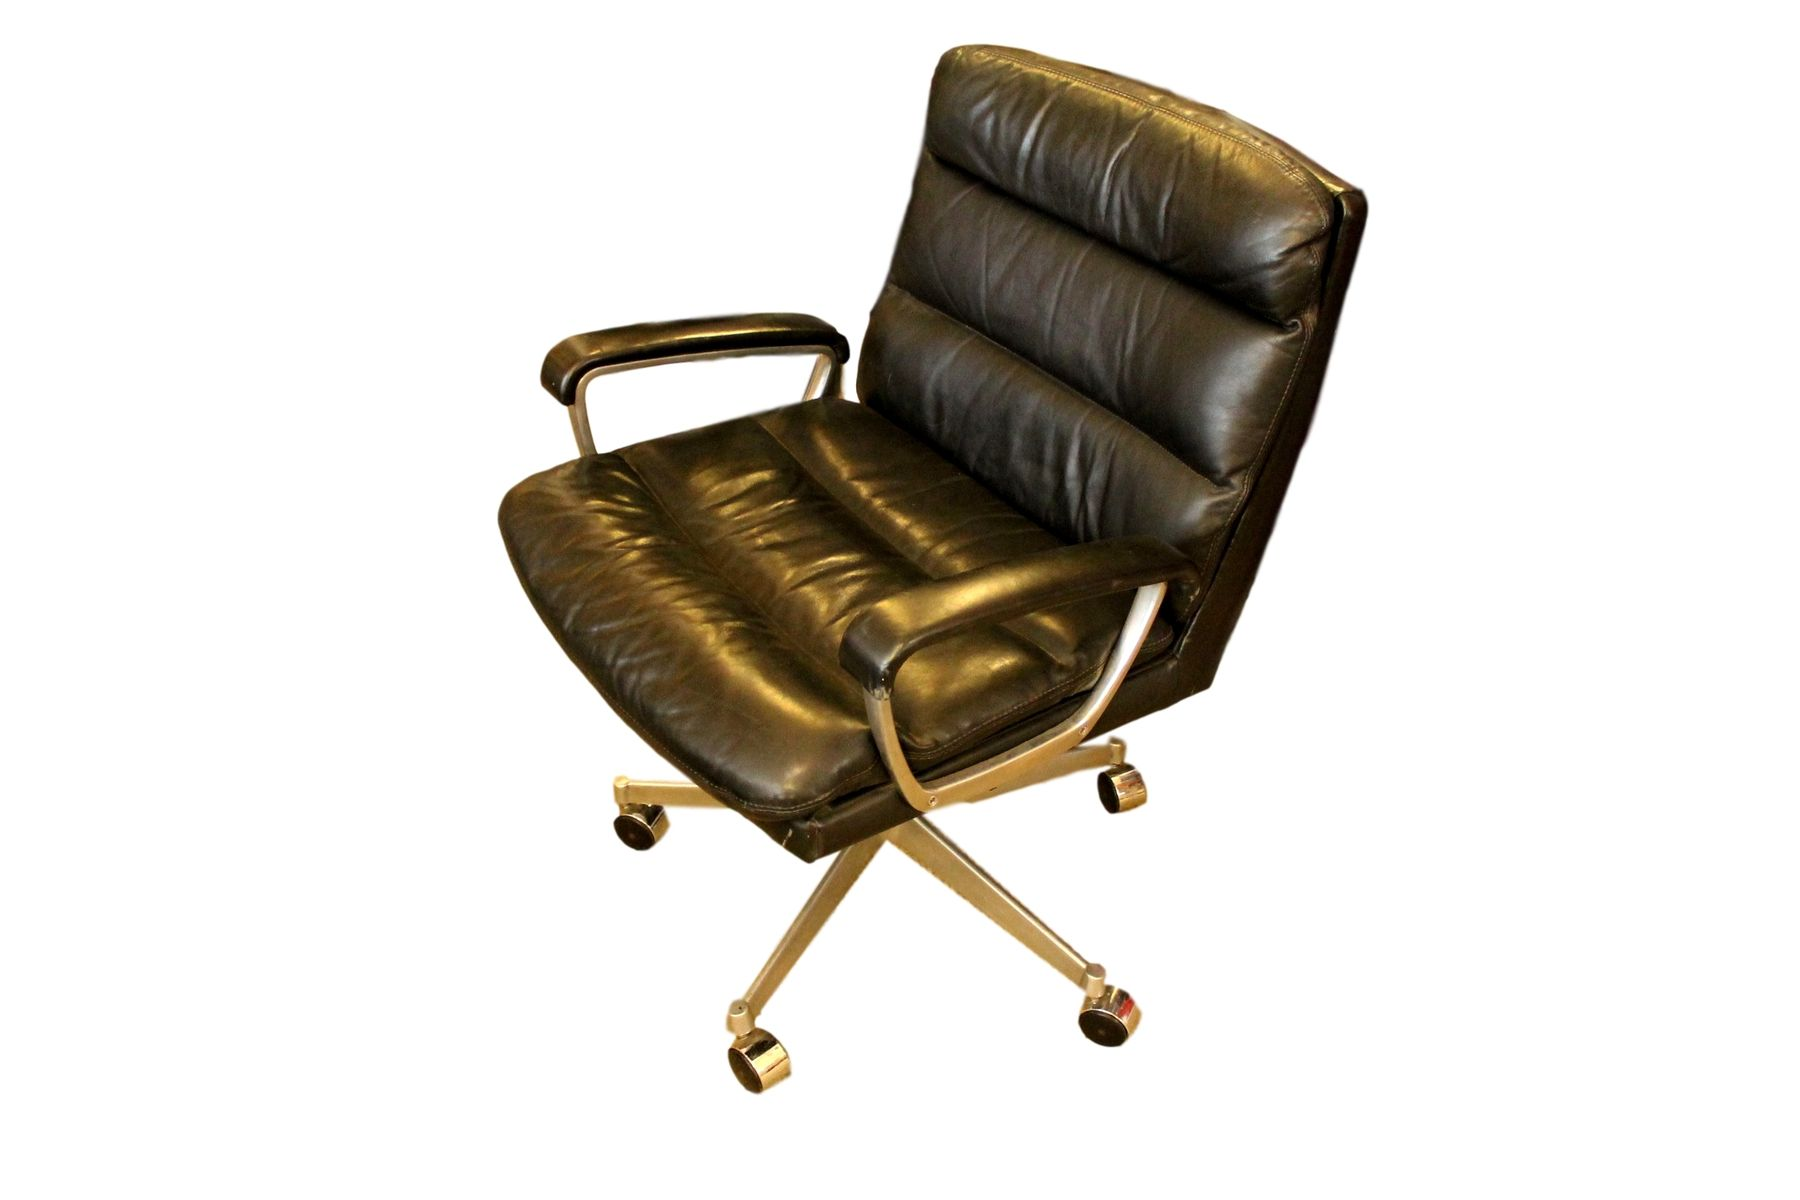 leather chrome office chair from ring mekanikk 1958 for